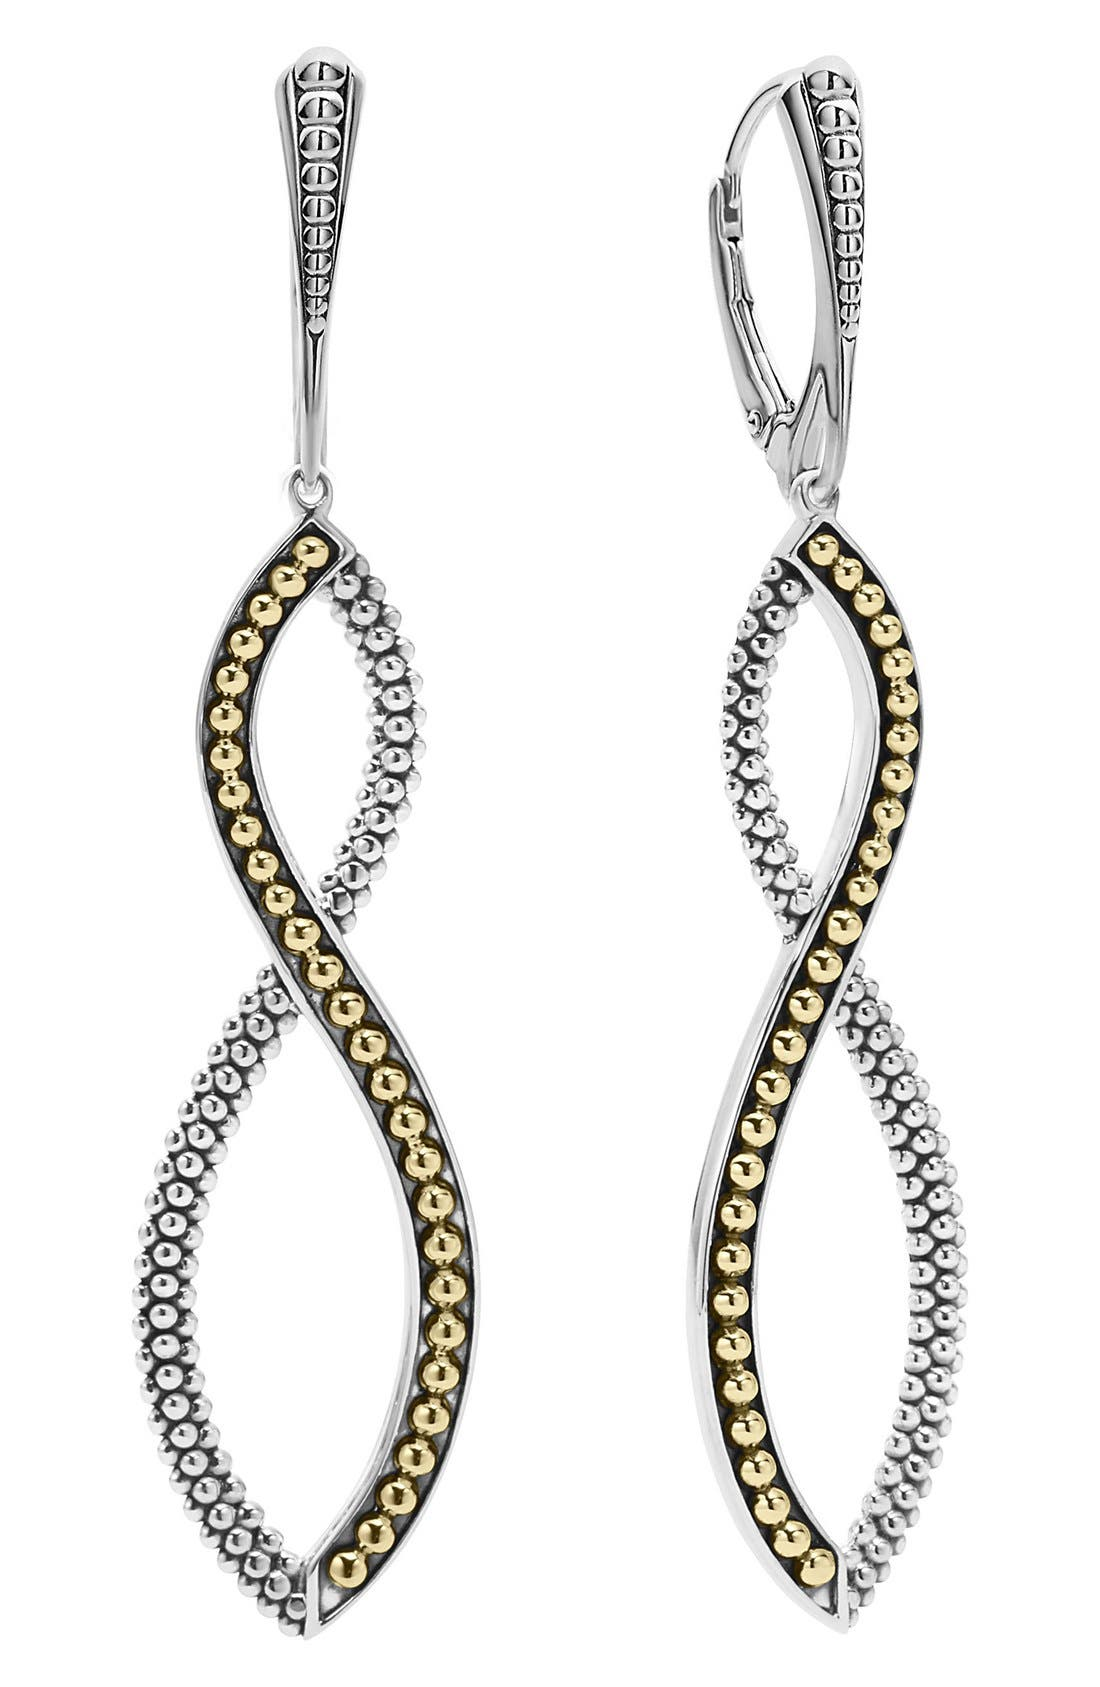 Infinity Twist Drop Earrings,                             Alternate thumbnail 3, color,                             SILVER/ GOLD